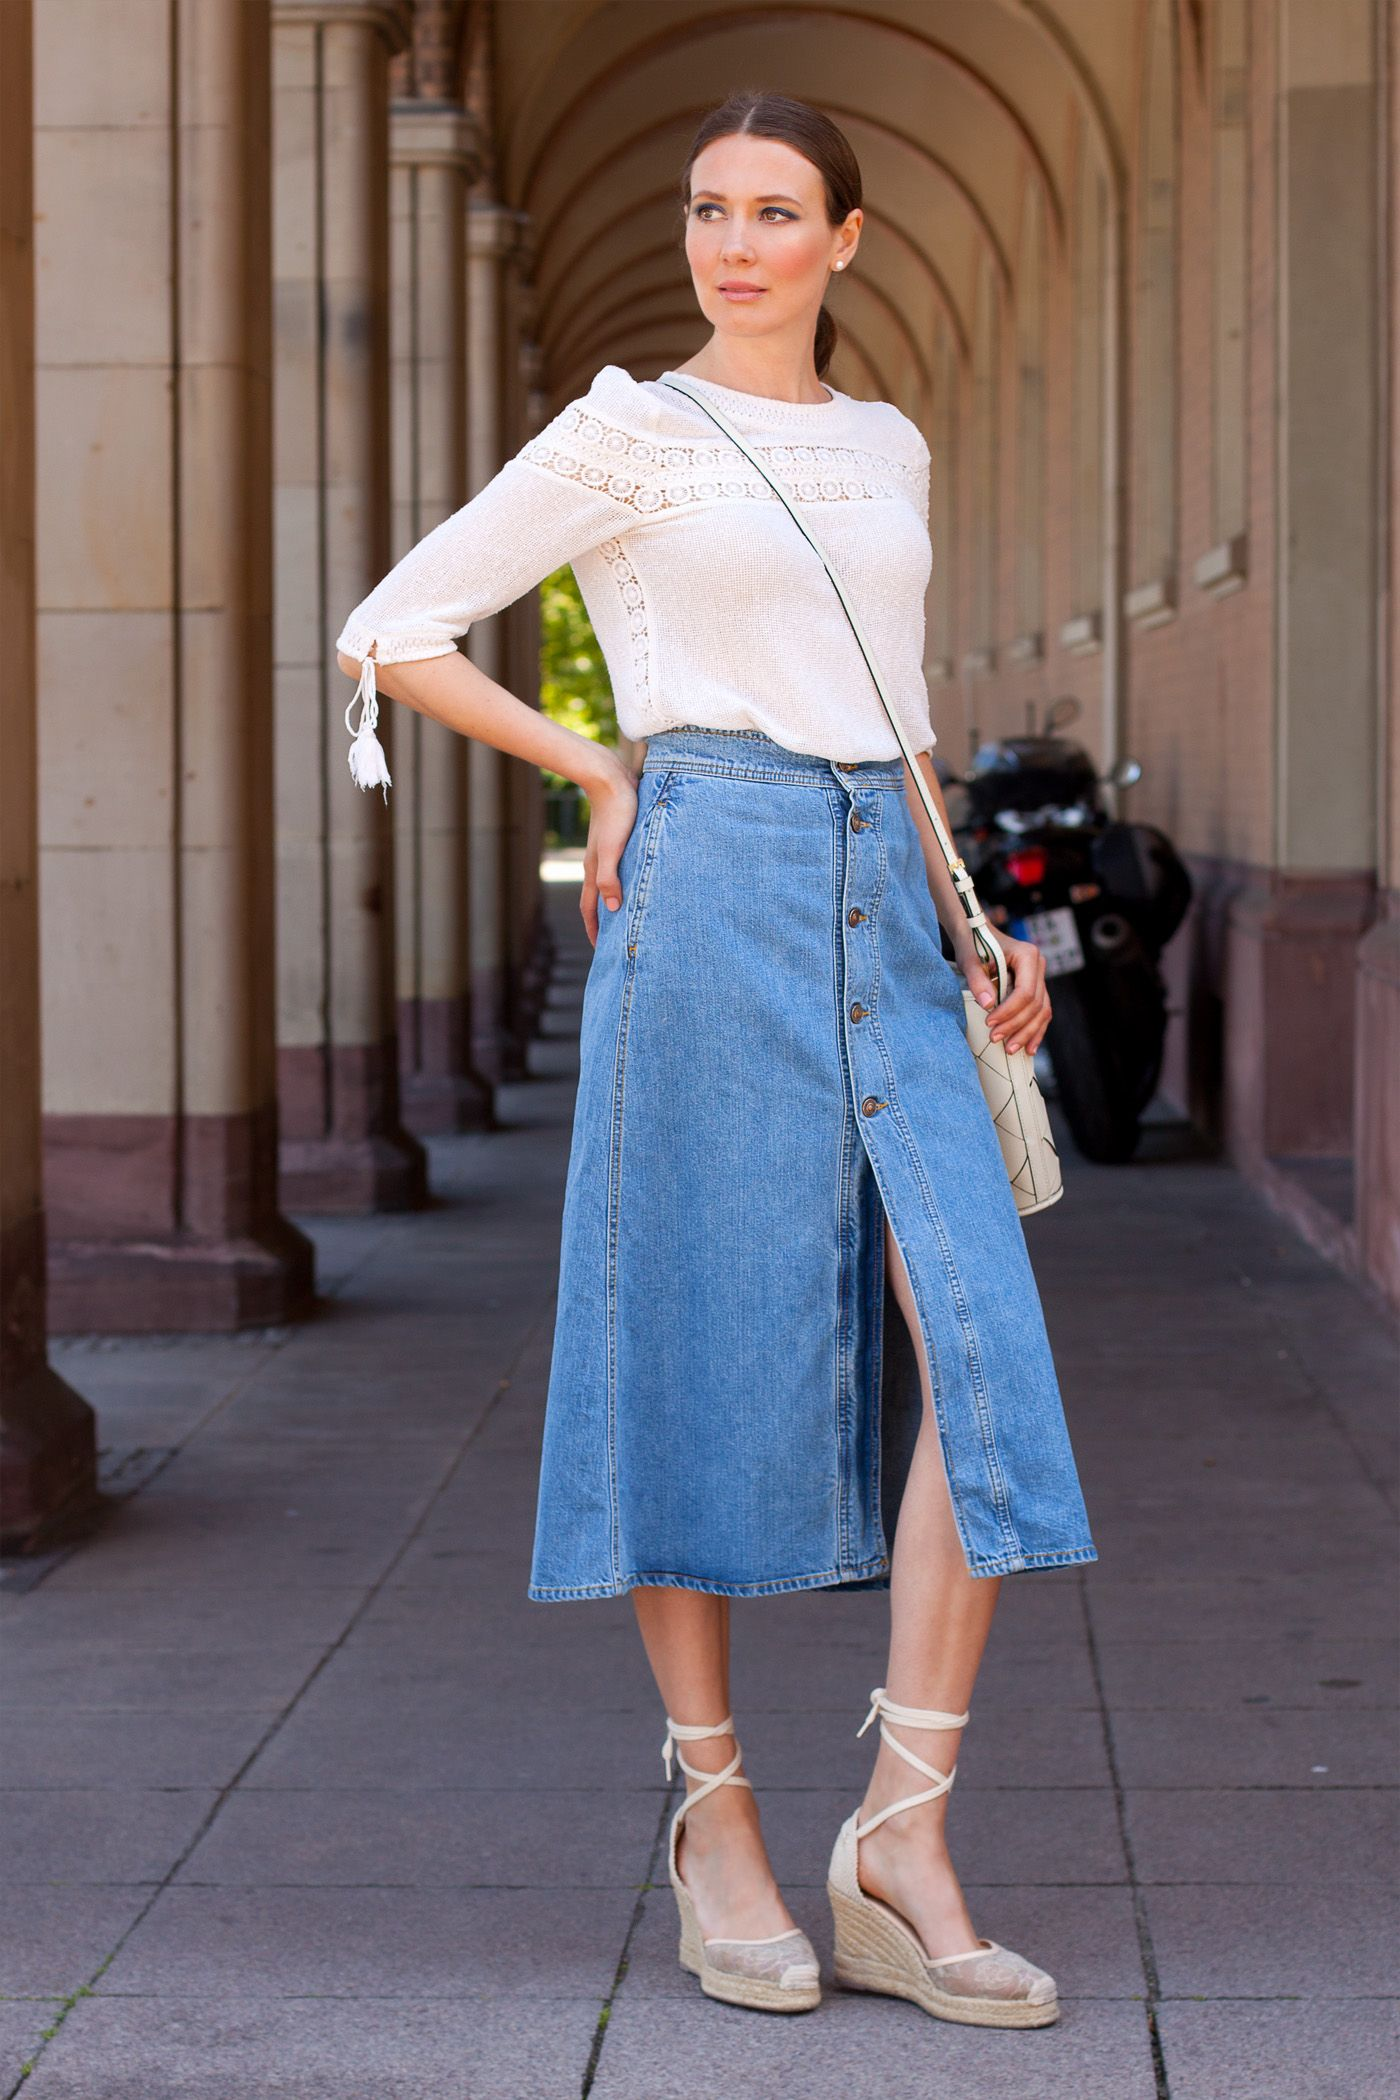 c664d9c65ec0d zara-denim-midi-skirt